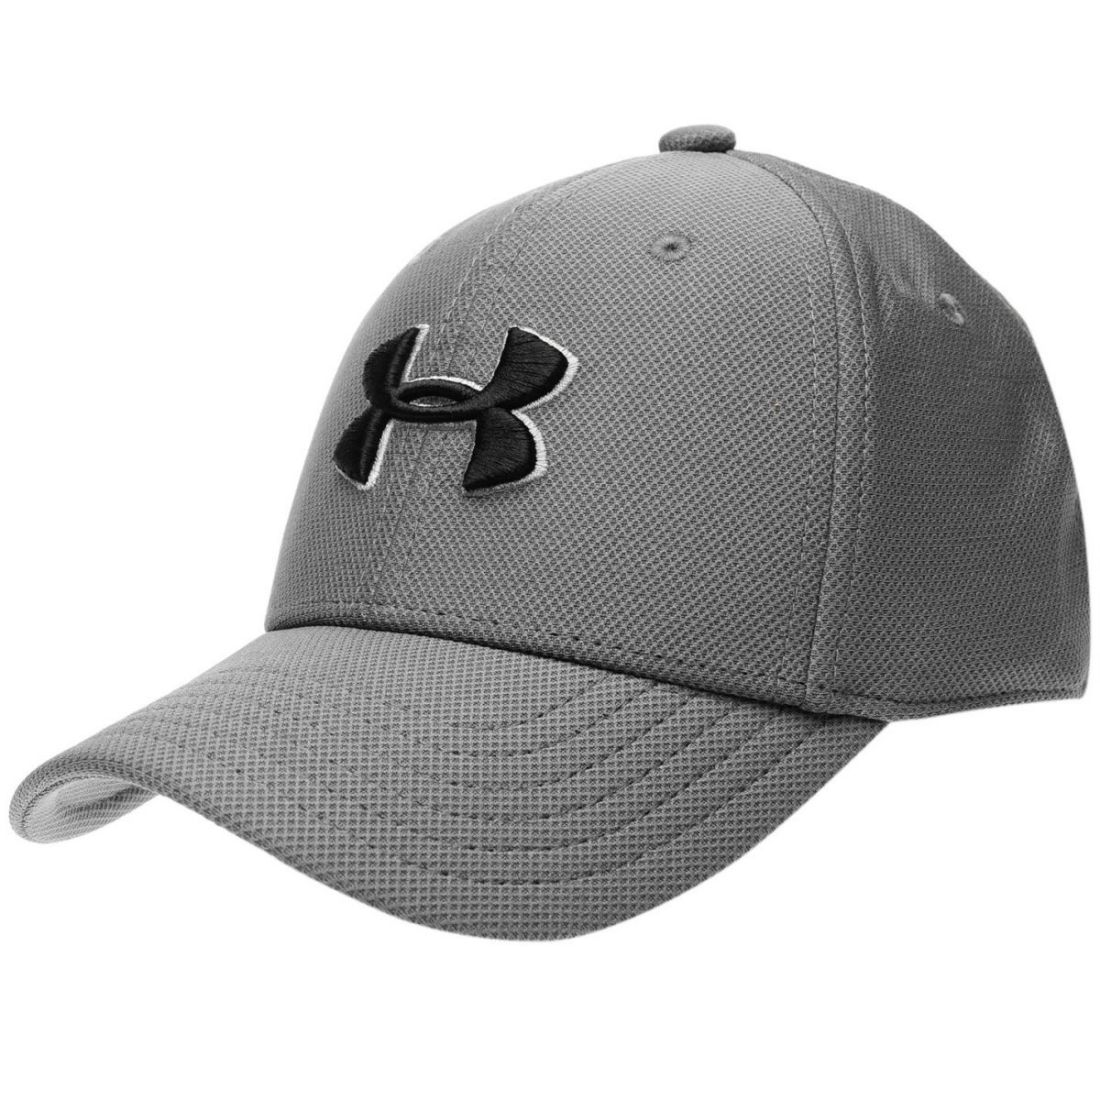 828571ba714 Under Armour Blitzing 3.0 Cap Youngster Boys Baseball Tonal ...